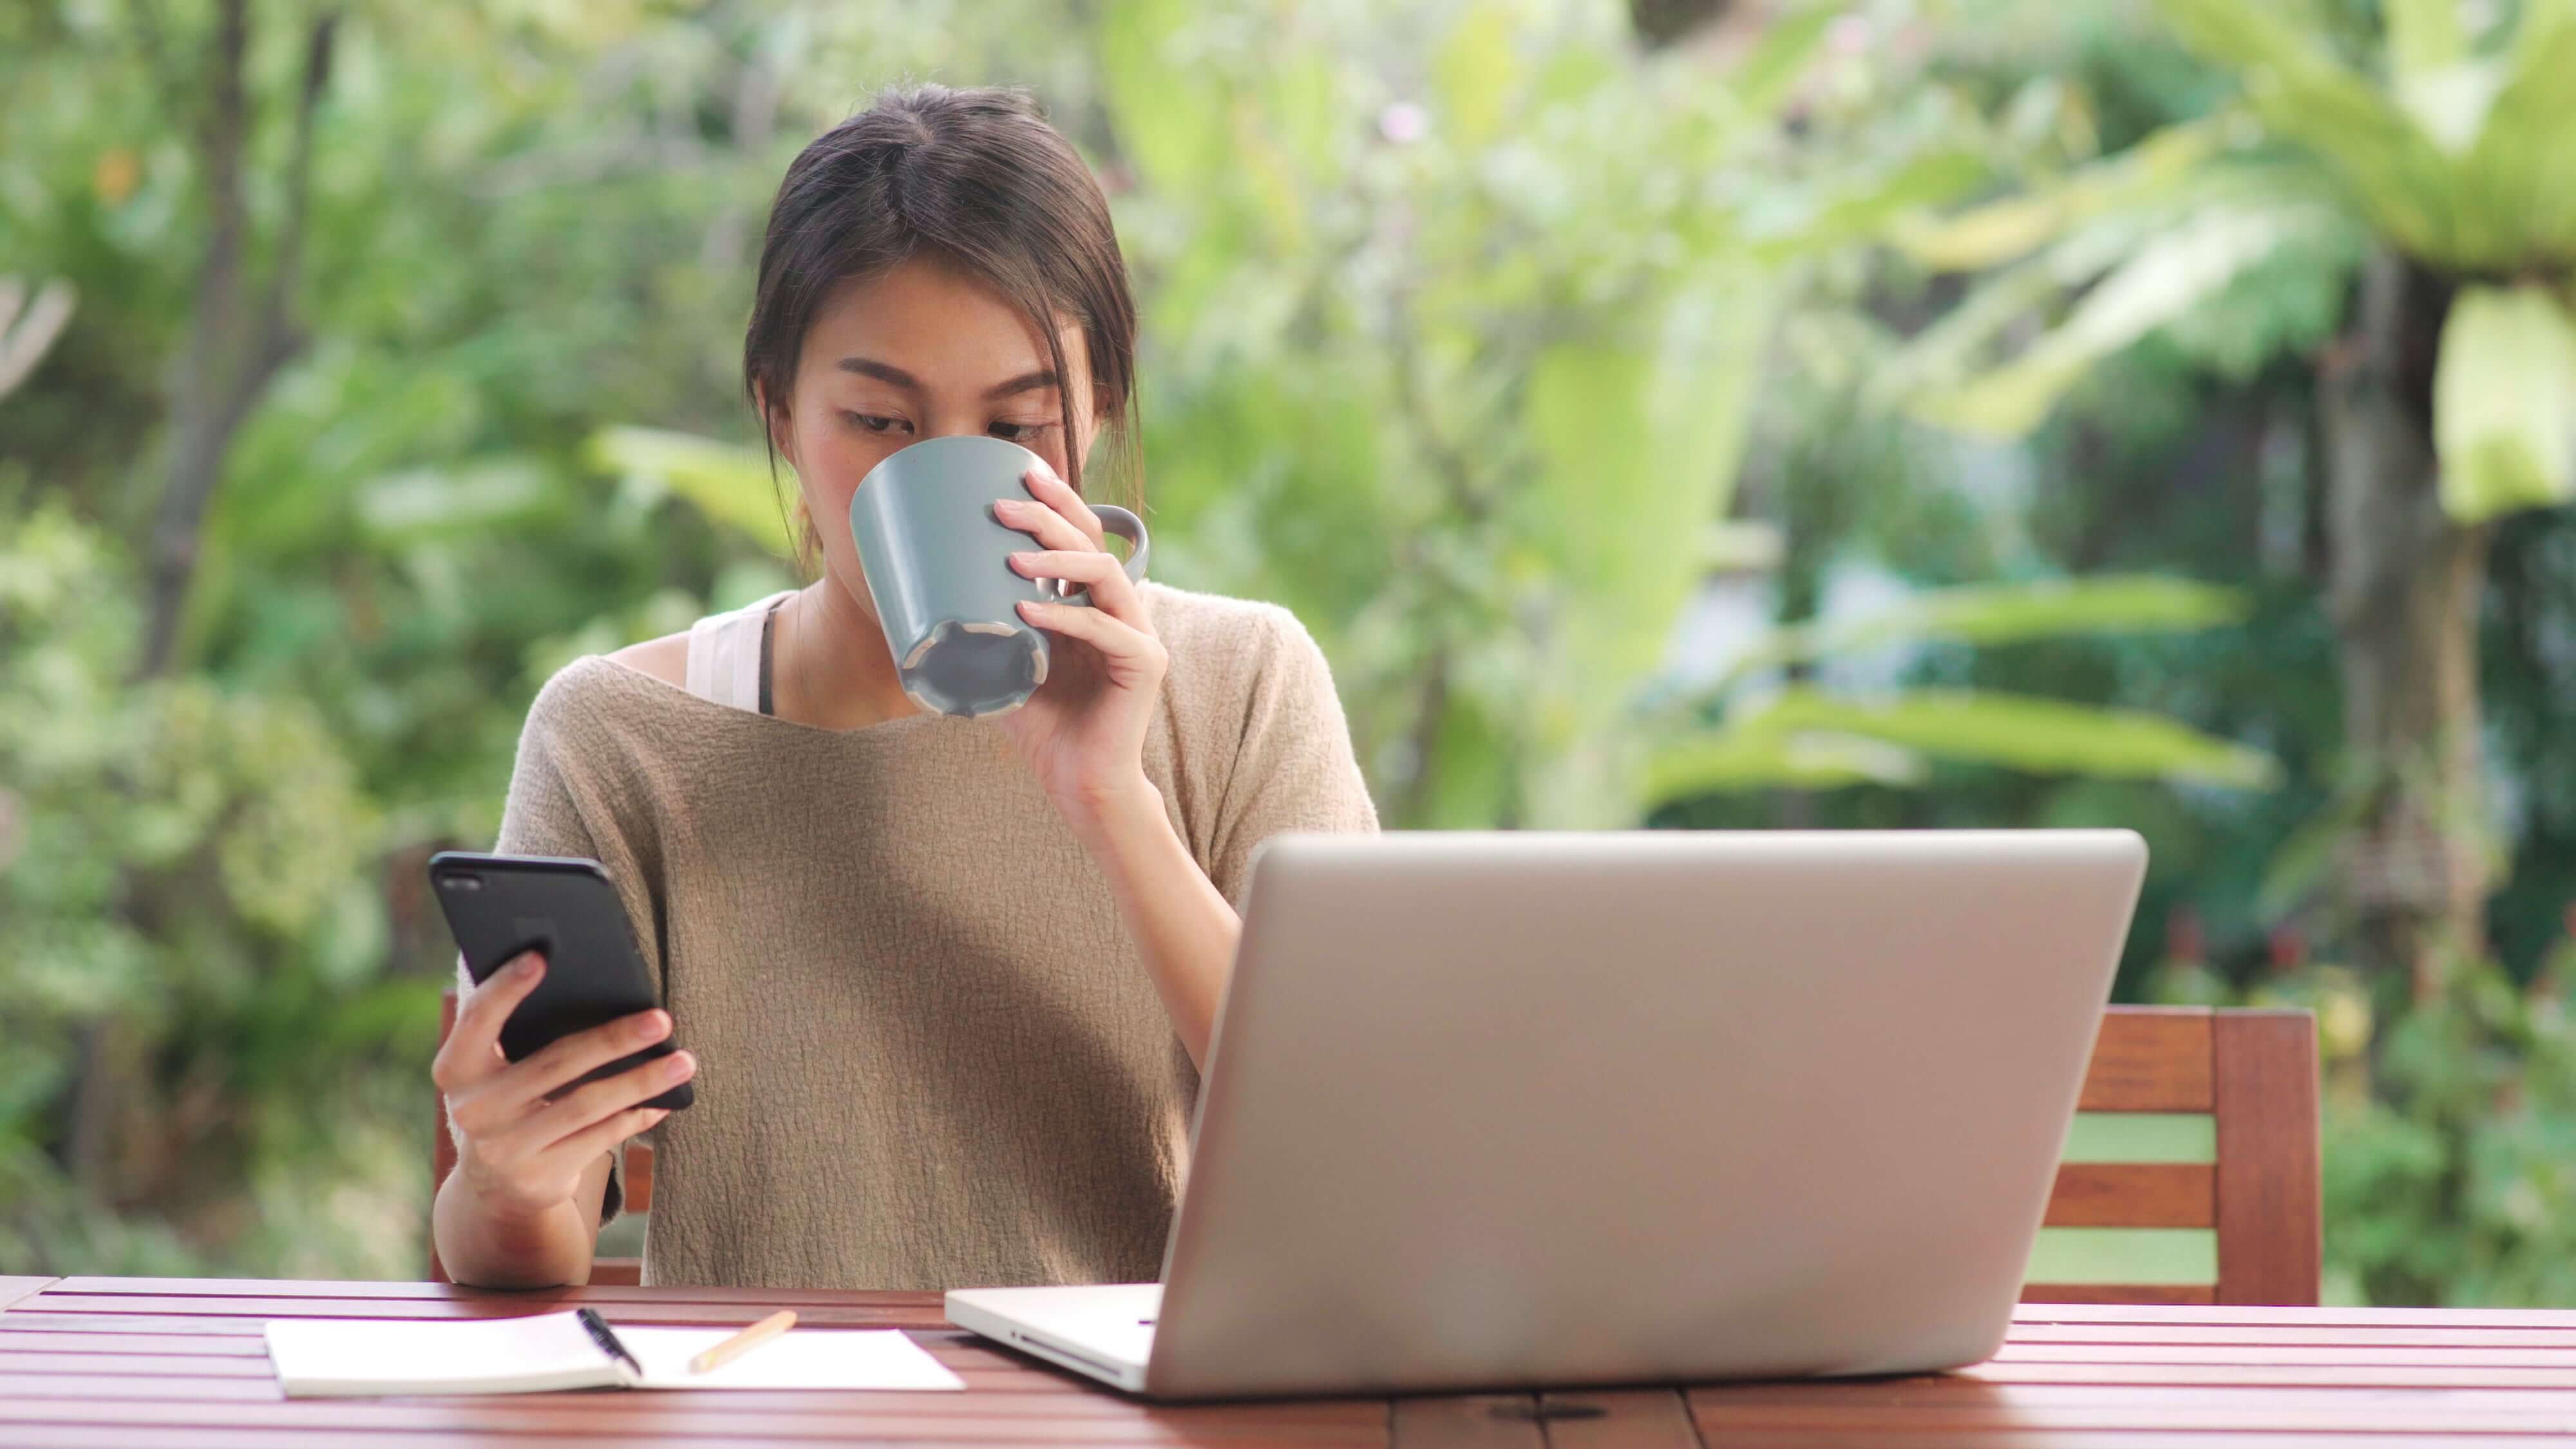 Maintaining Your Mental Health While Working From Home